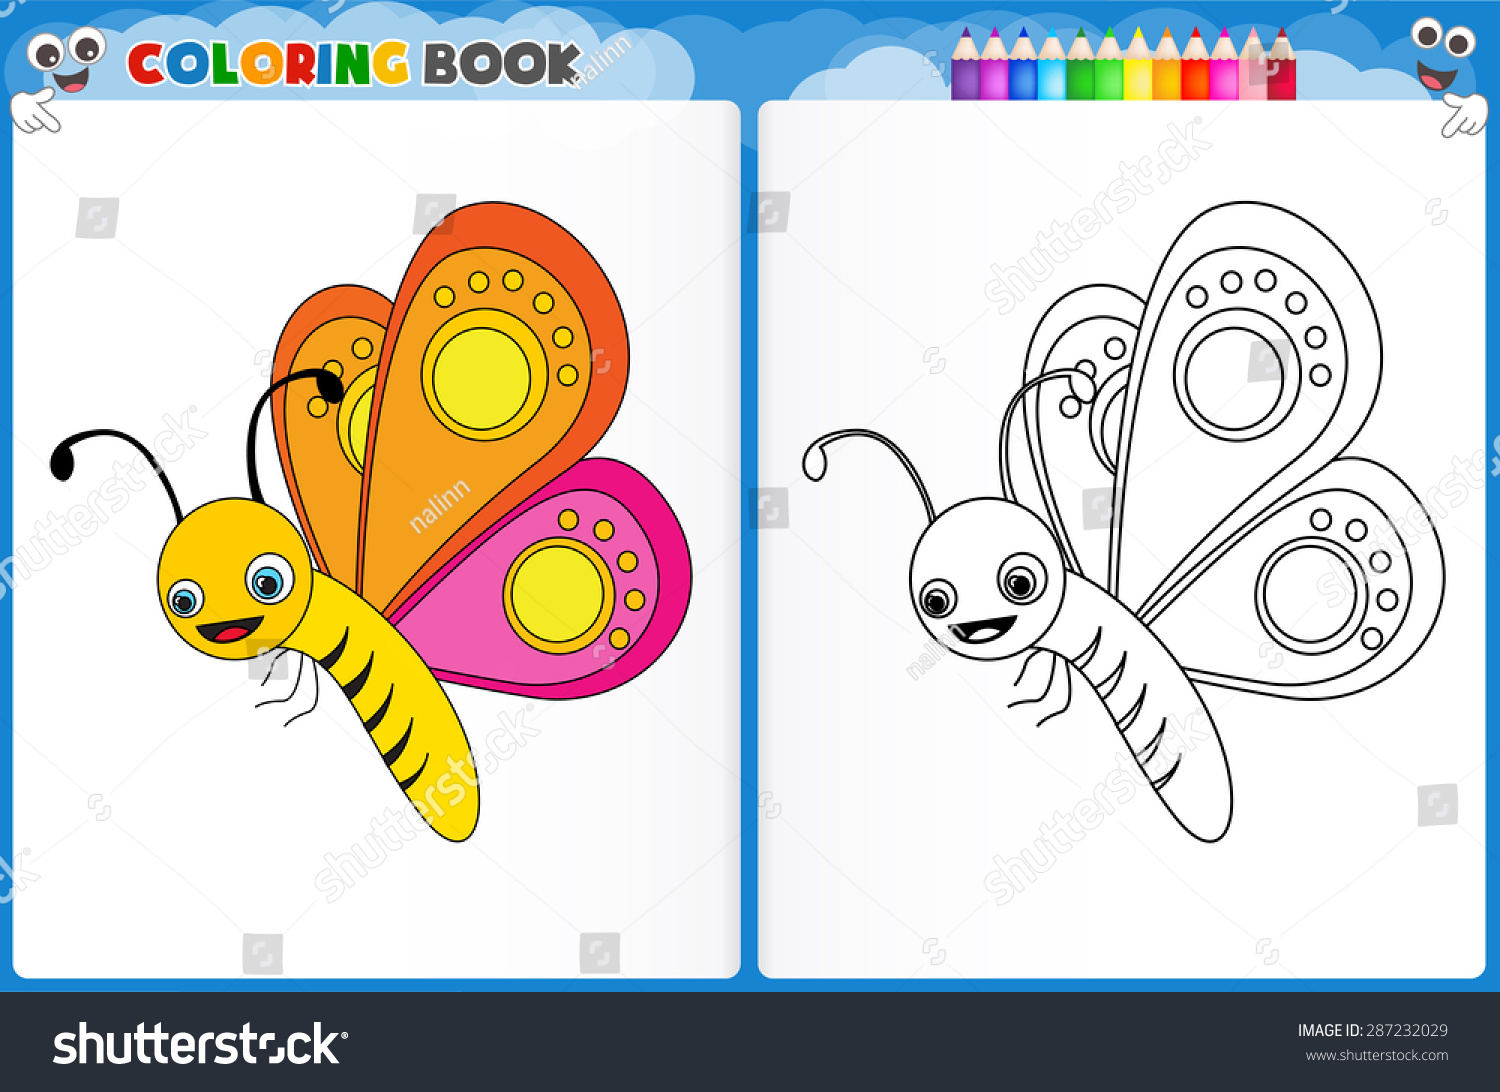 coloring page butterfly colorful sample printable stock vector 287232029 shutterstock Coloring Pages for Girls 10 and Up  Coloring Book Examples